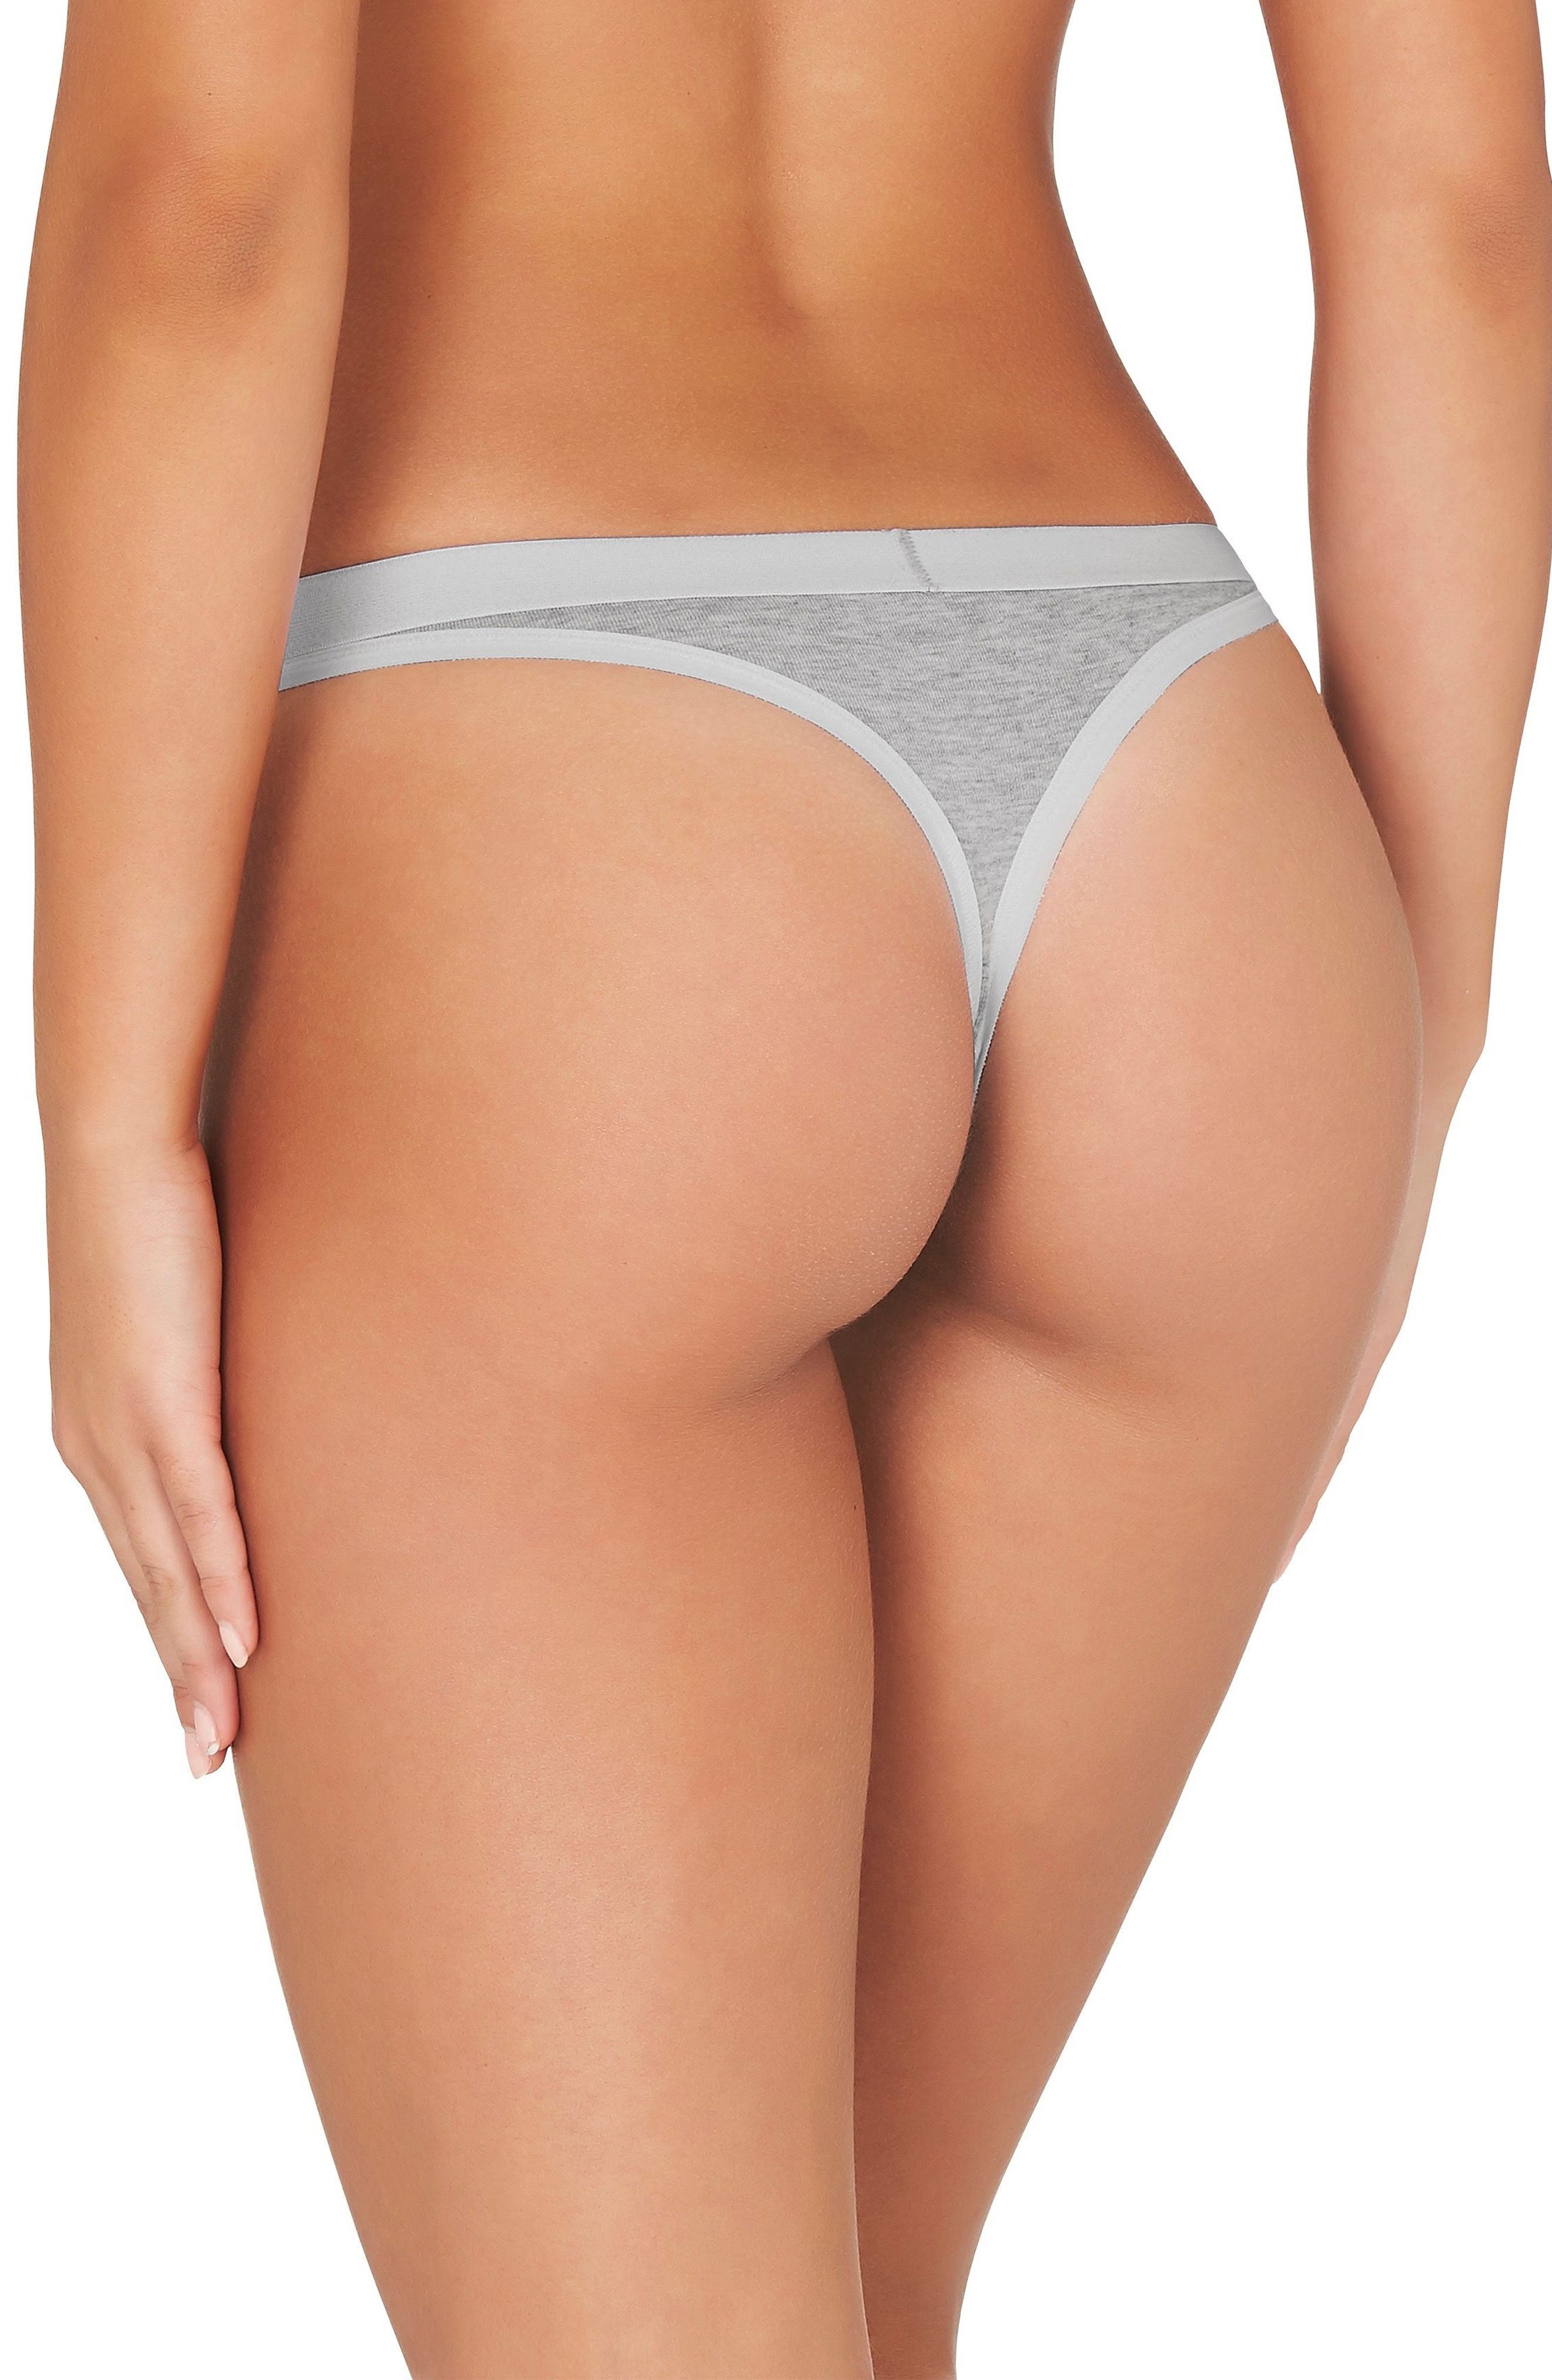 2-Pack Stretch Organic Cotton Girlfriend G-Strings,                             Alternate thumbnail 4, color,                             Grey Marle